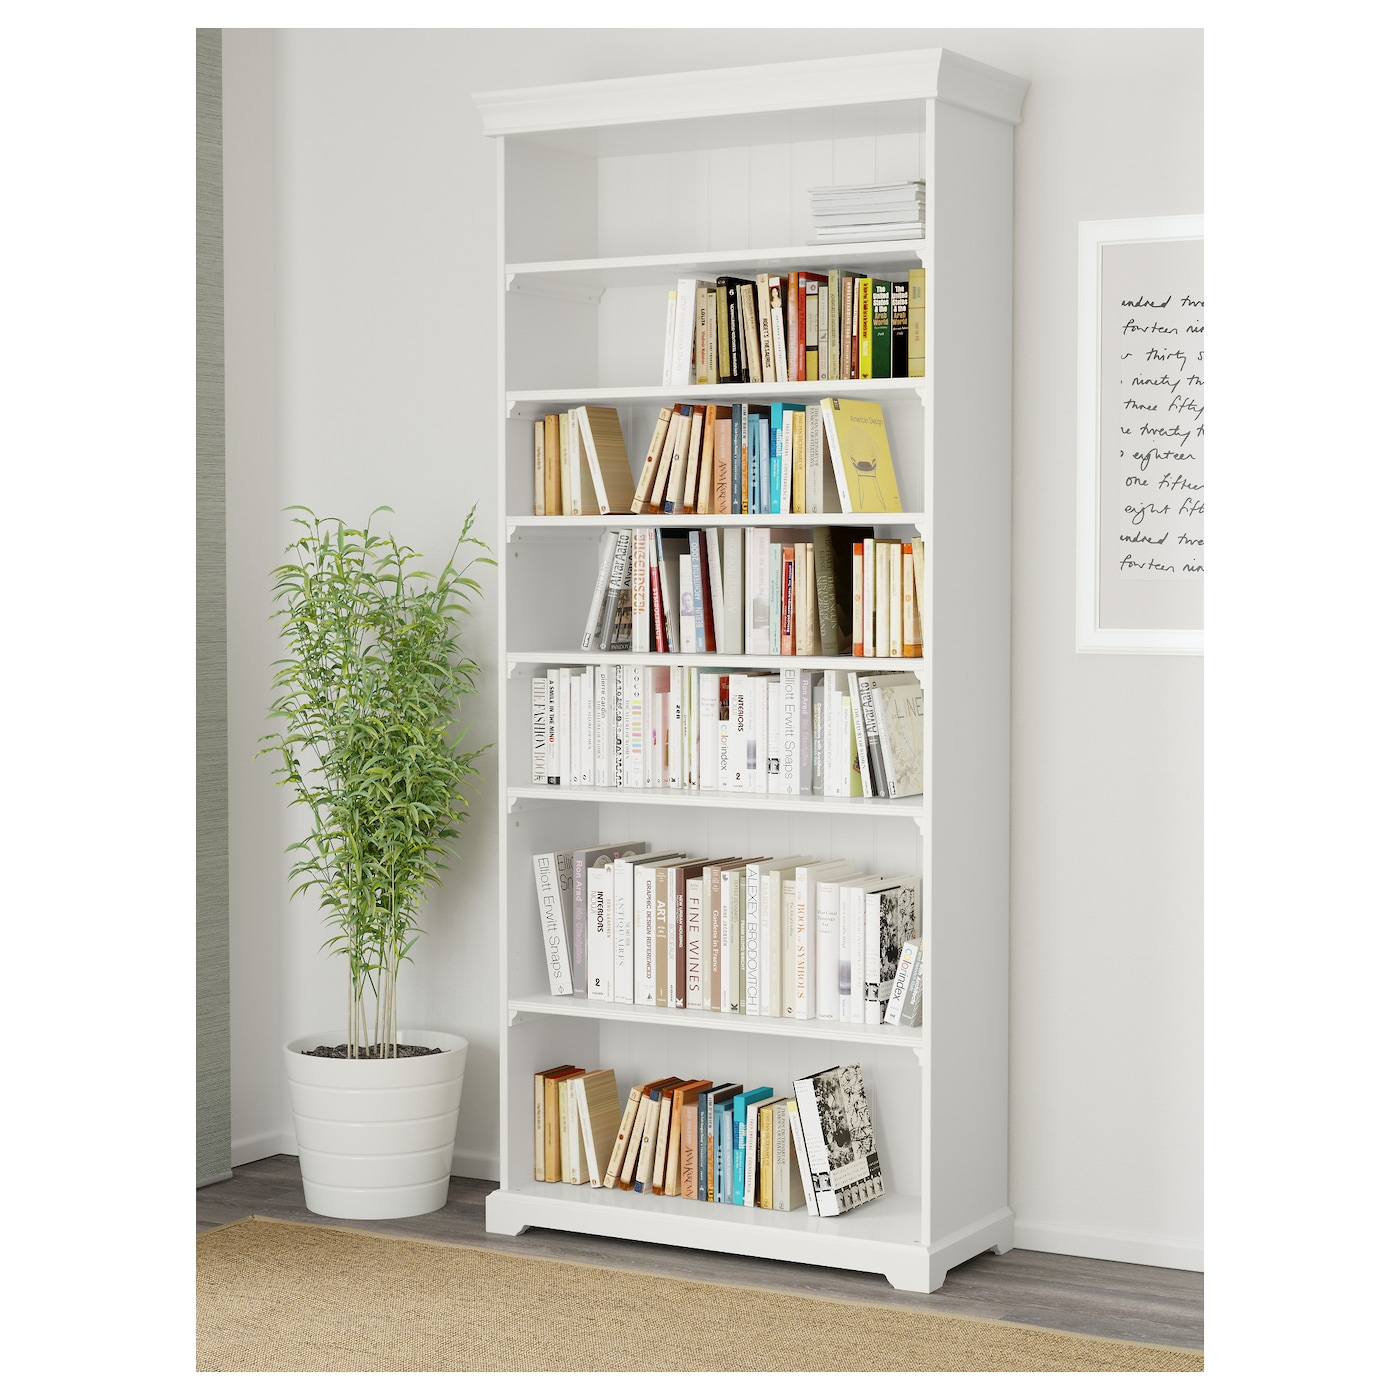 https://www.ikea.com/be/nl/images/products/liatorp-boekenkast-wit__0394574_pe561397_s5.jpg